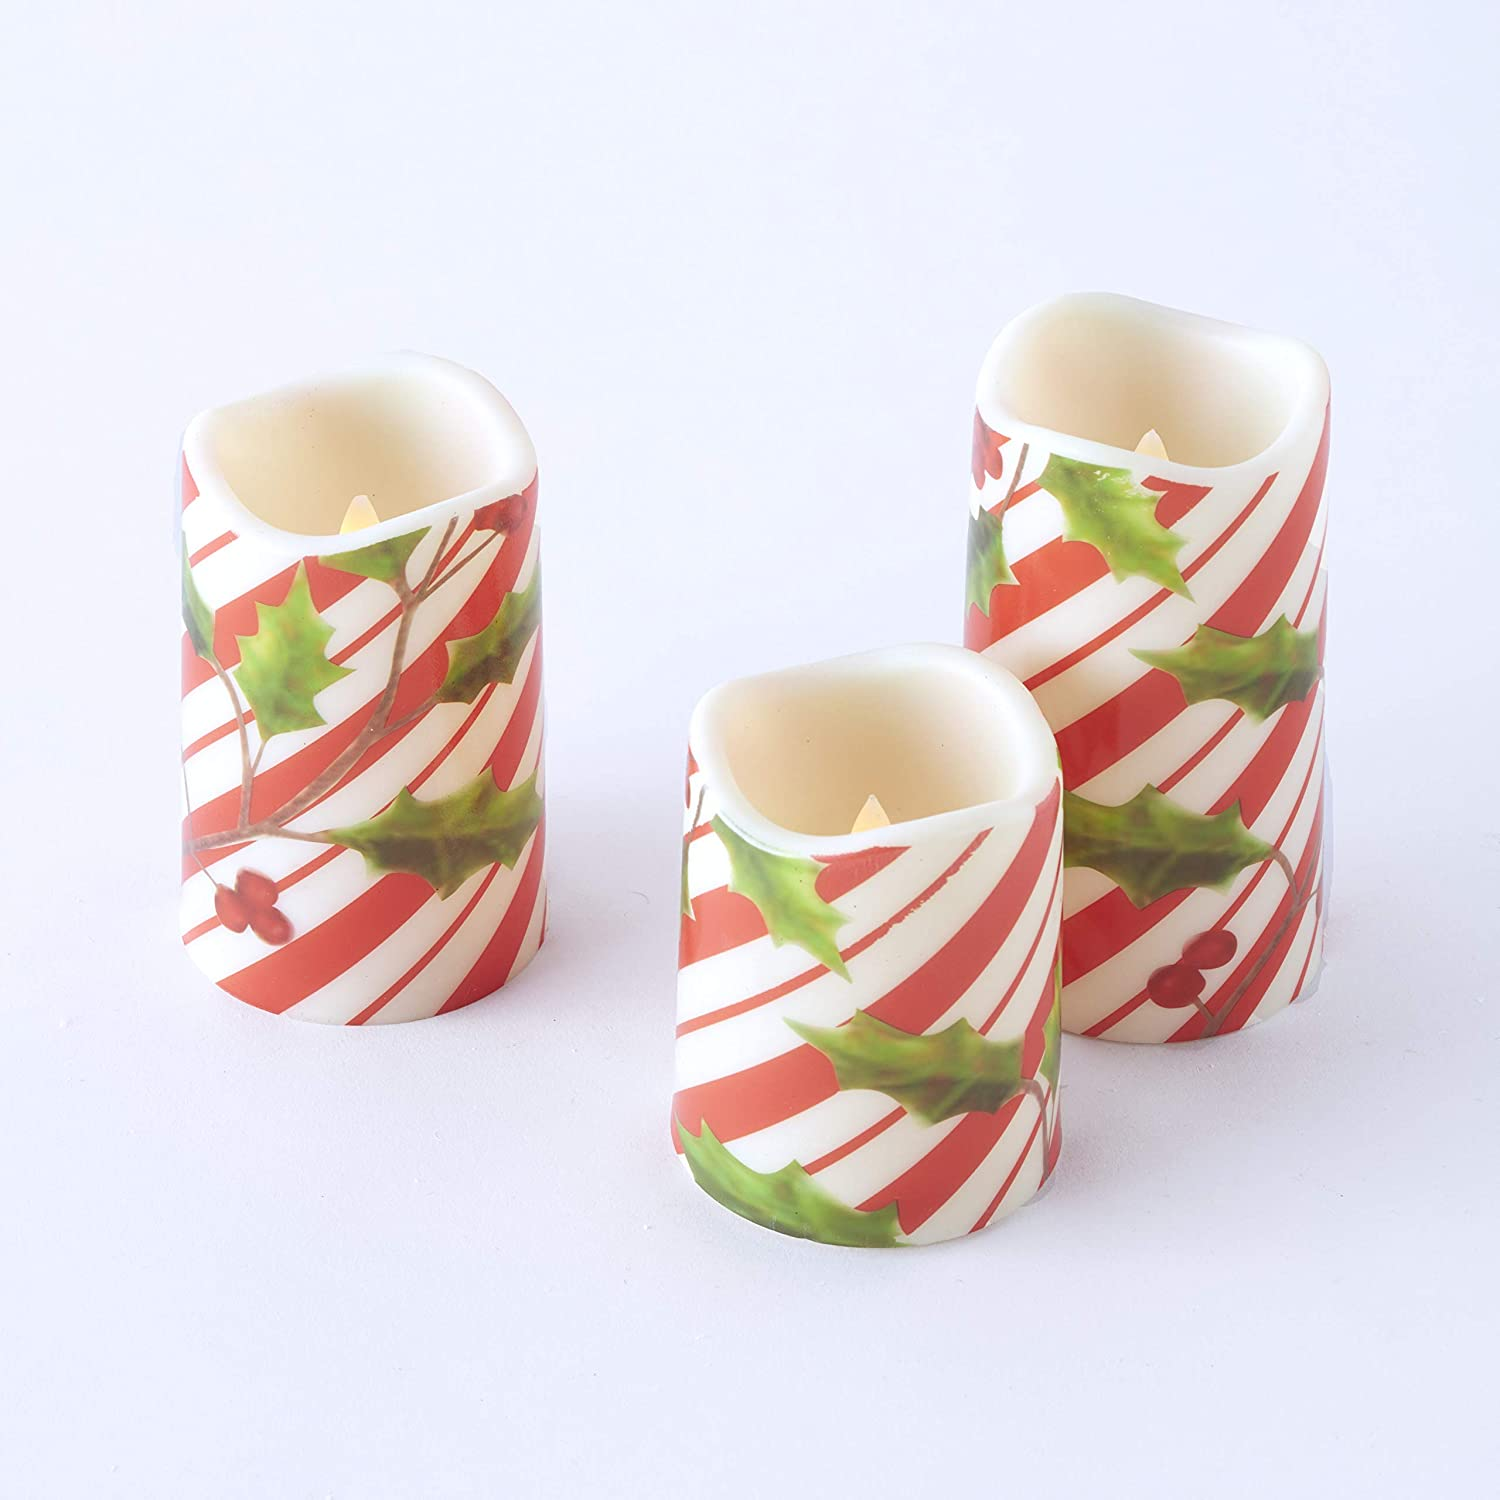 Set of 3 The Lakeside Collection LED Candy Cane Motif Christmas Candles with Faux Floral Holly Leaves